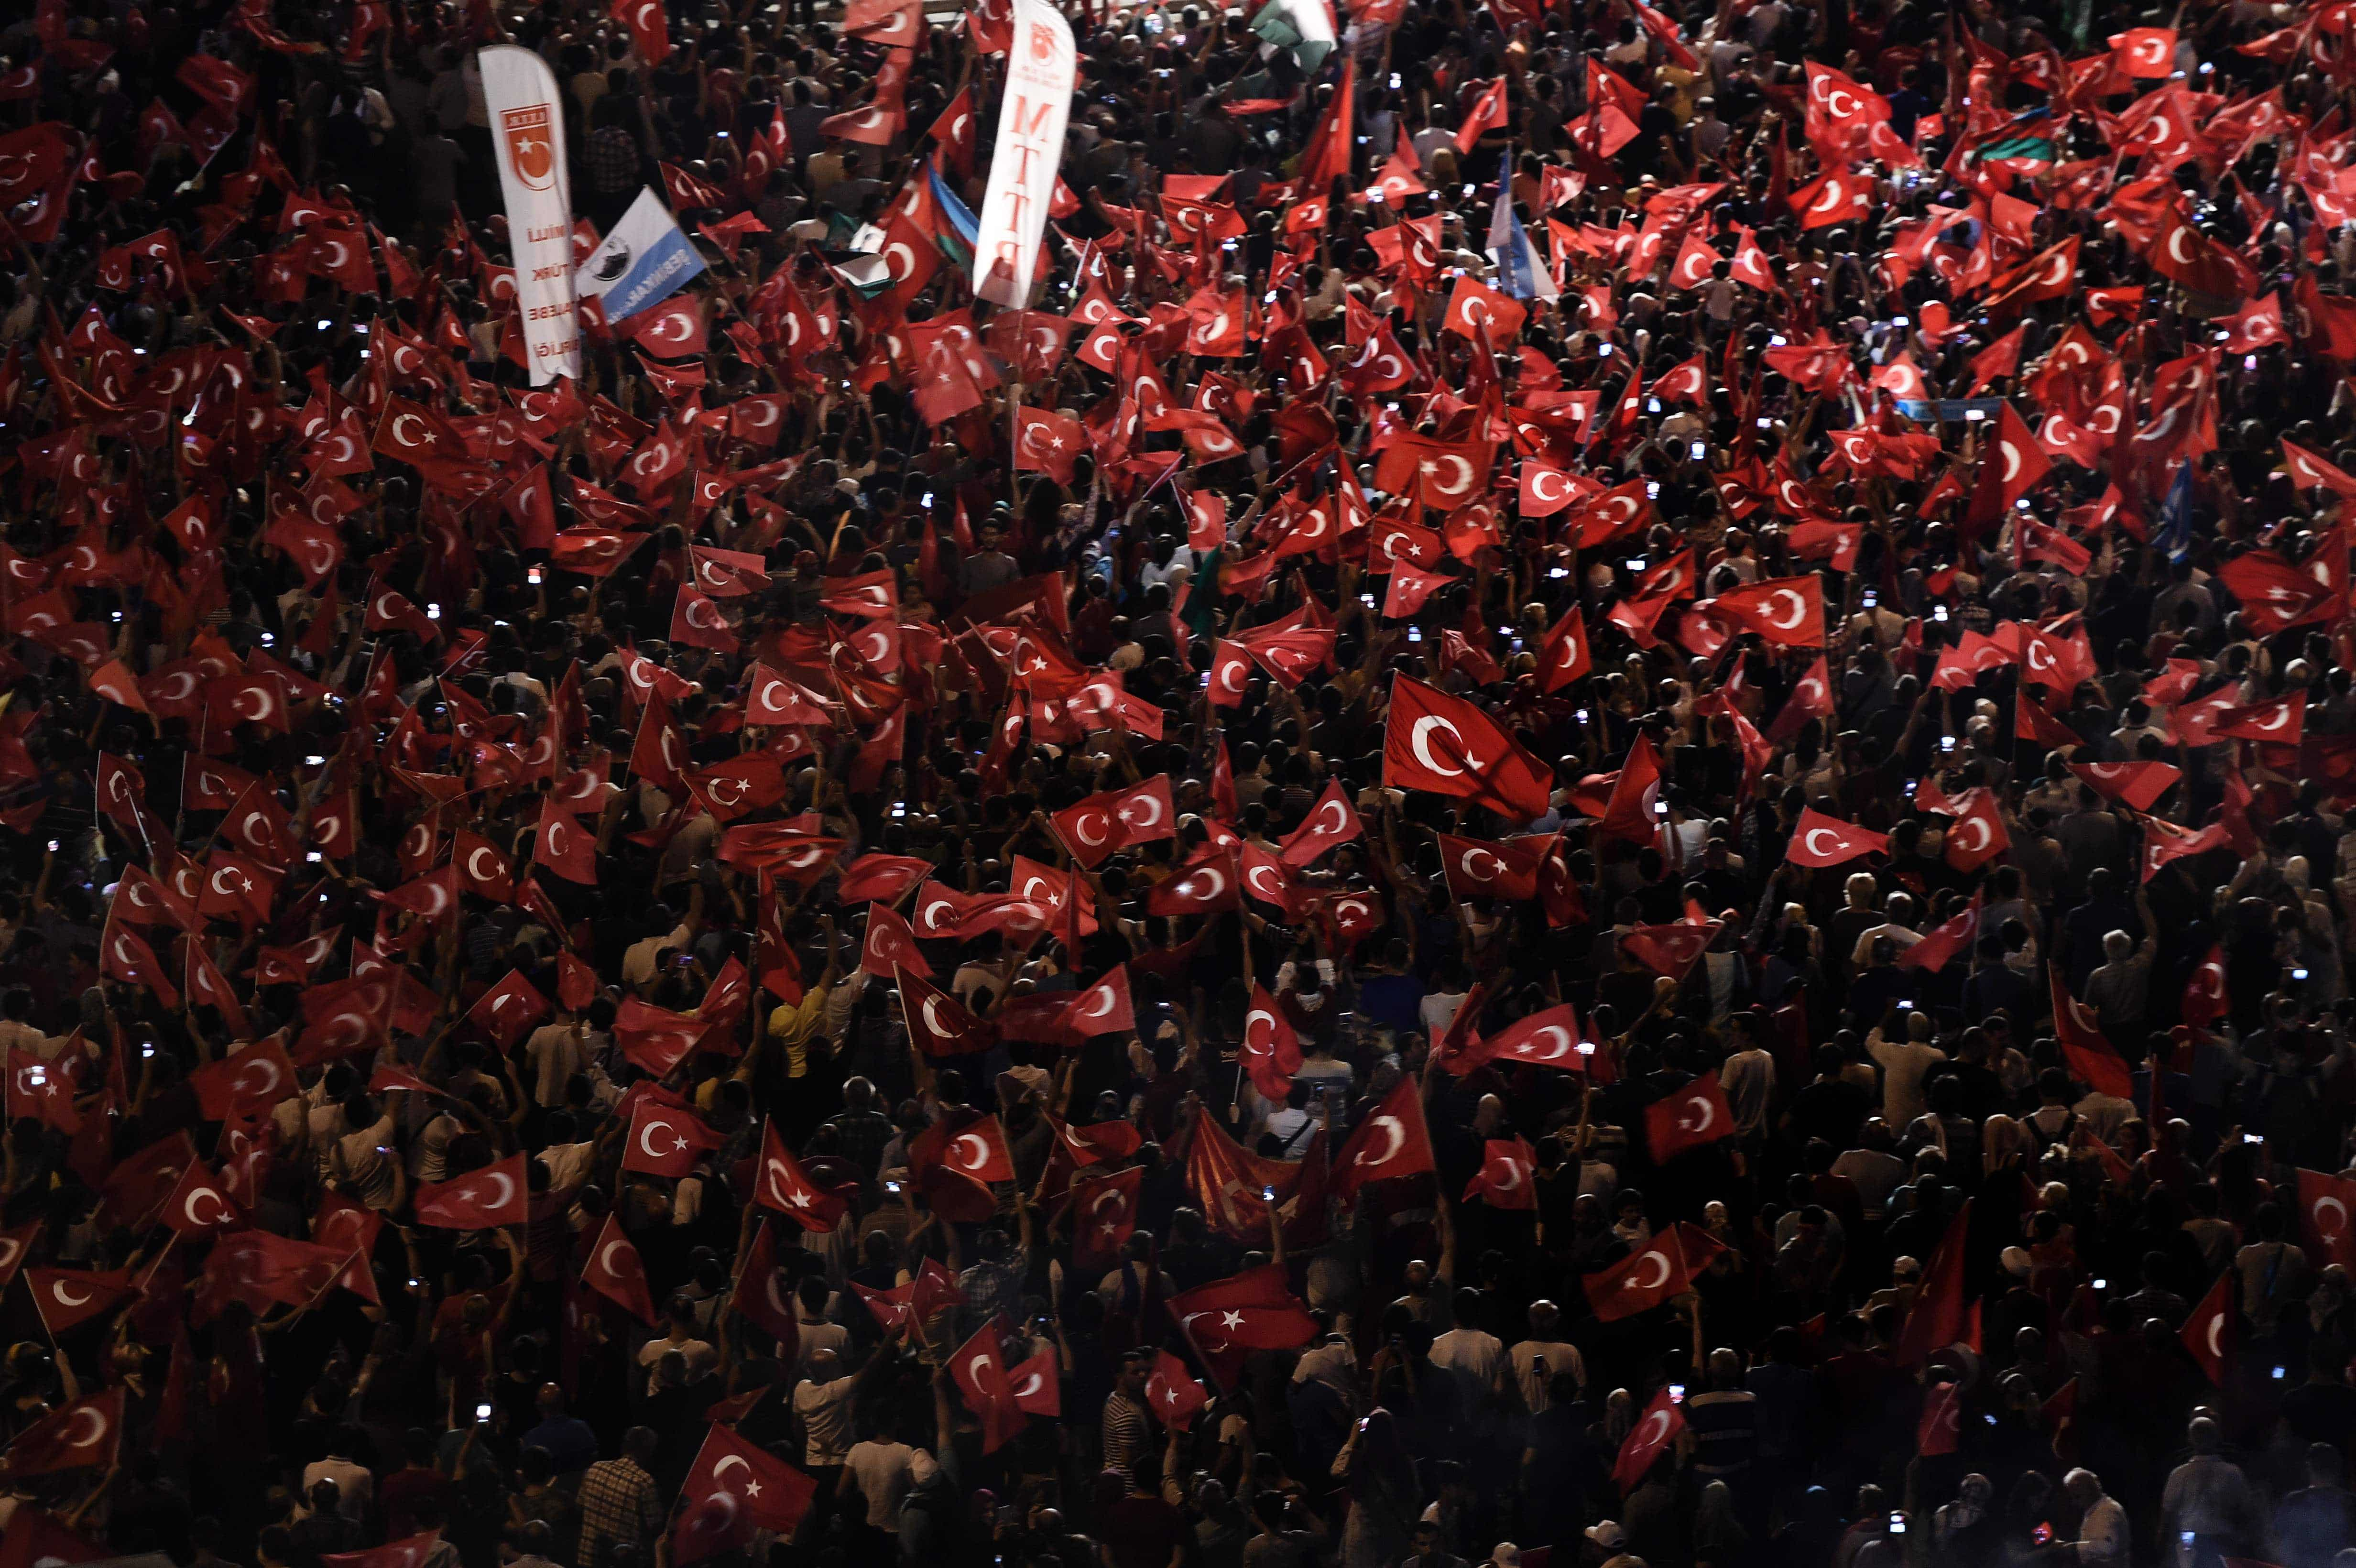 LKS 20160719 ARIS2230; A Pro-Erdogan supporters hold Turkish national flags during a rally at Taksim square in Istanbul on July 18, 2016 following the military failed coup attempt of July 15. Turkish security forces on July 18 carried out new raids against suspected plotters of the botched coup against the rule of President Recep Tayyip Erdogan, as international concern grew over the scale of the crackdown. Thousands of pro-Erdogan supporters waving Turkish flags filled the main Kizilay Square in Ankara while similar scenes were seen in Taksim Square in Istanbul, AFP photographers said. / AFP / ARIS MESSINIS - LEHTIKUVA / AFP